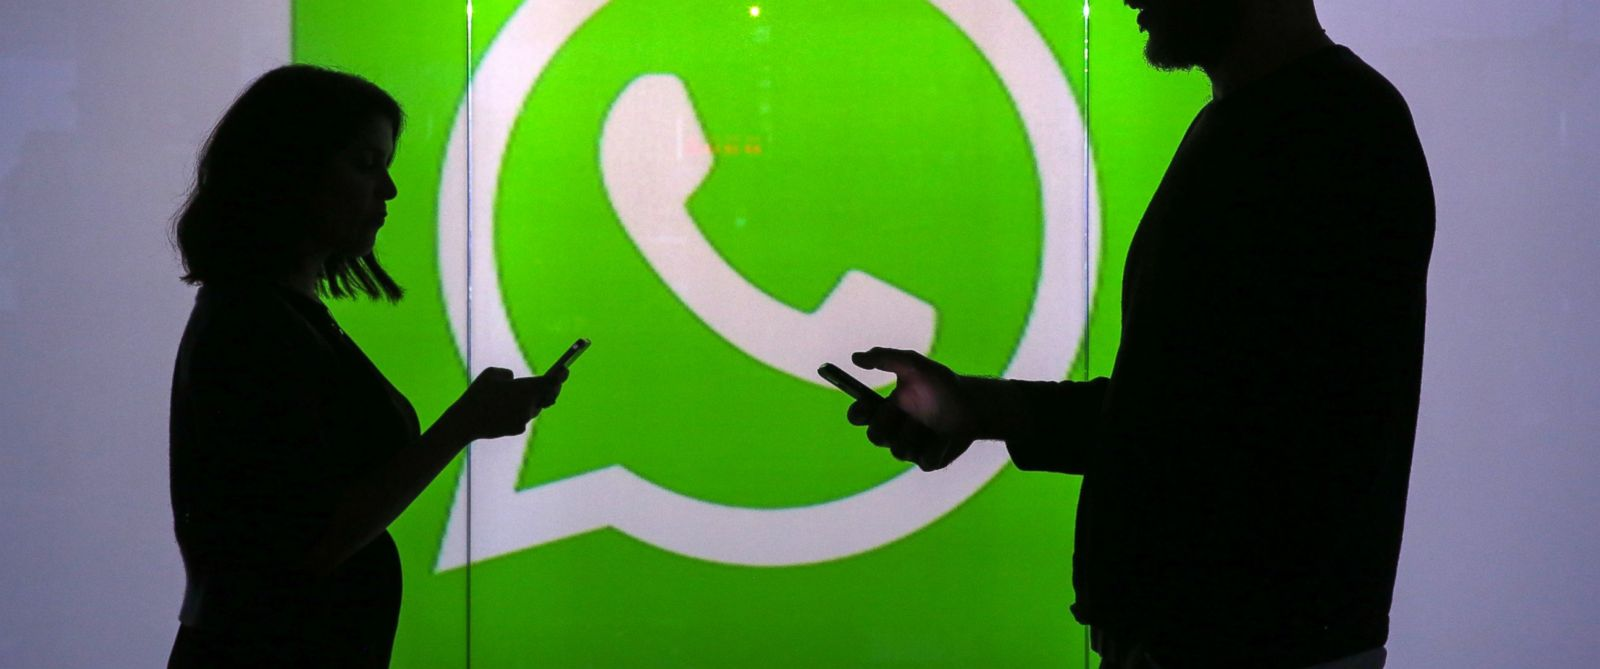 PHOTO:People are seen as silhouettes as they check mobile devices while standing against an illuminated wall bearing WhatsApp Incs logo in this arranged photograph in London, Jan. 5, 2016.